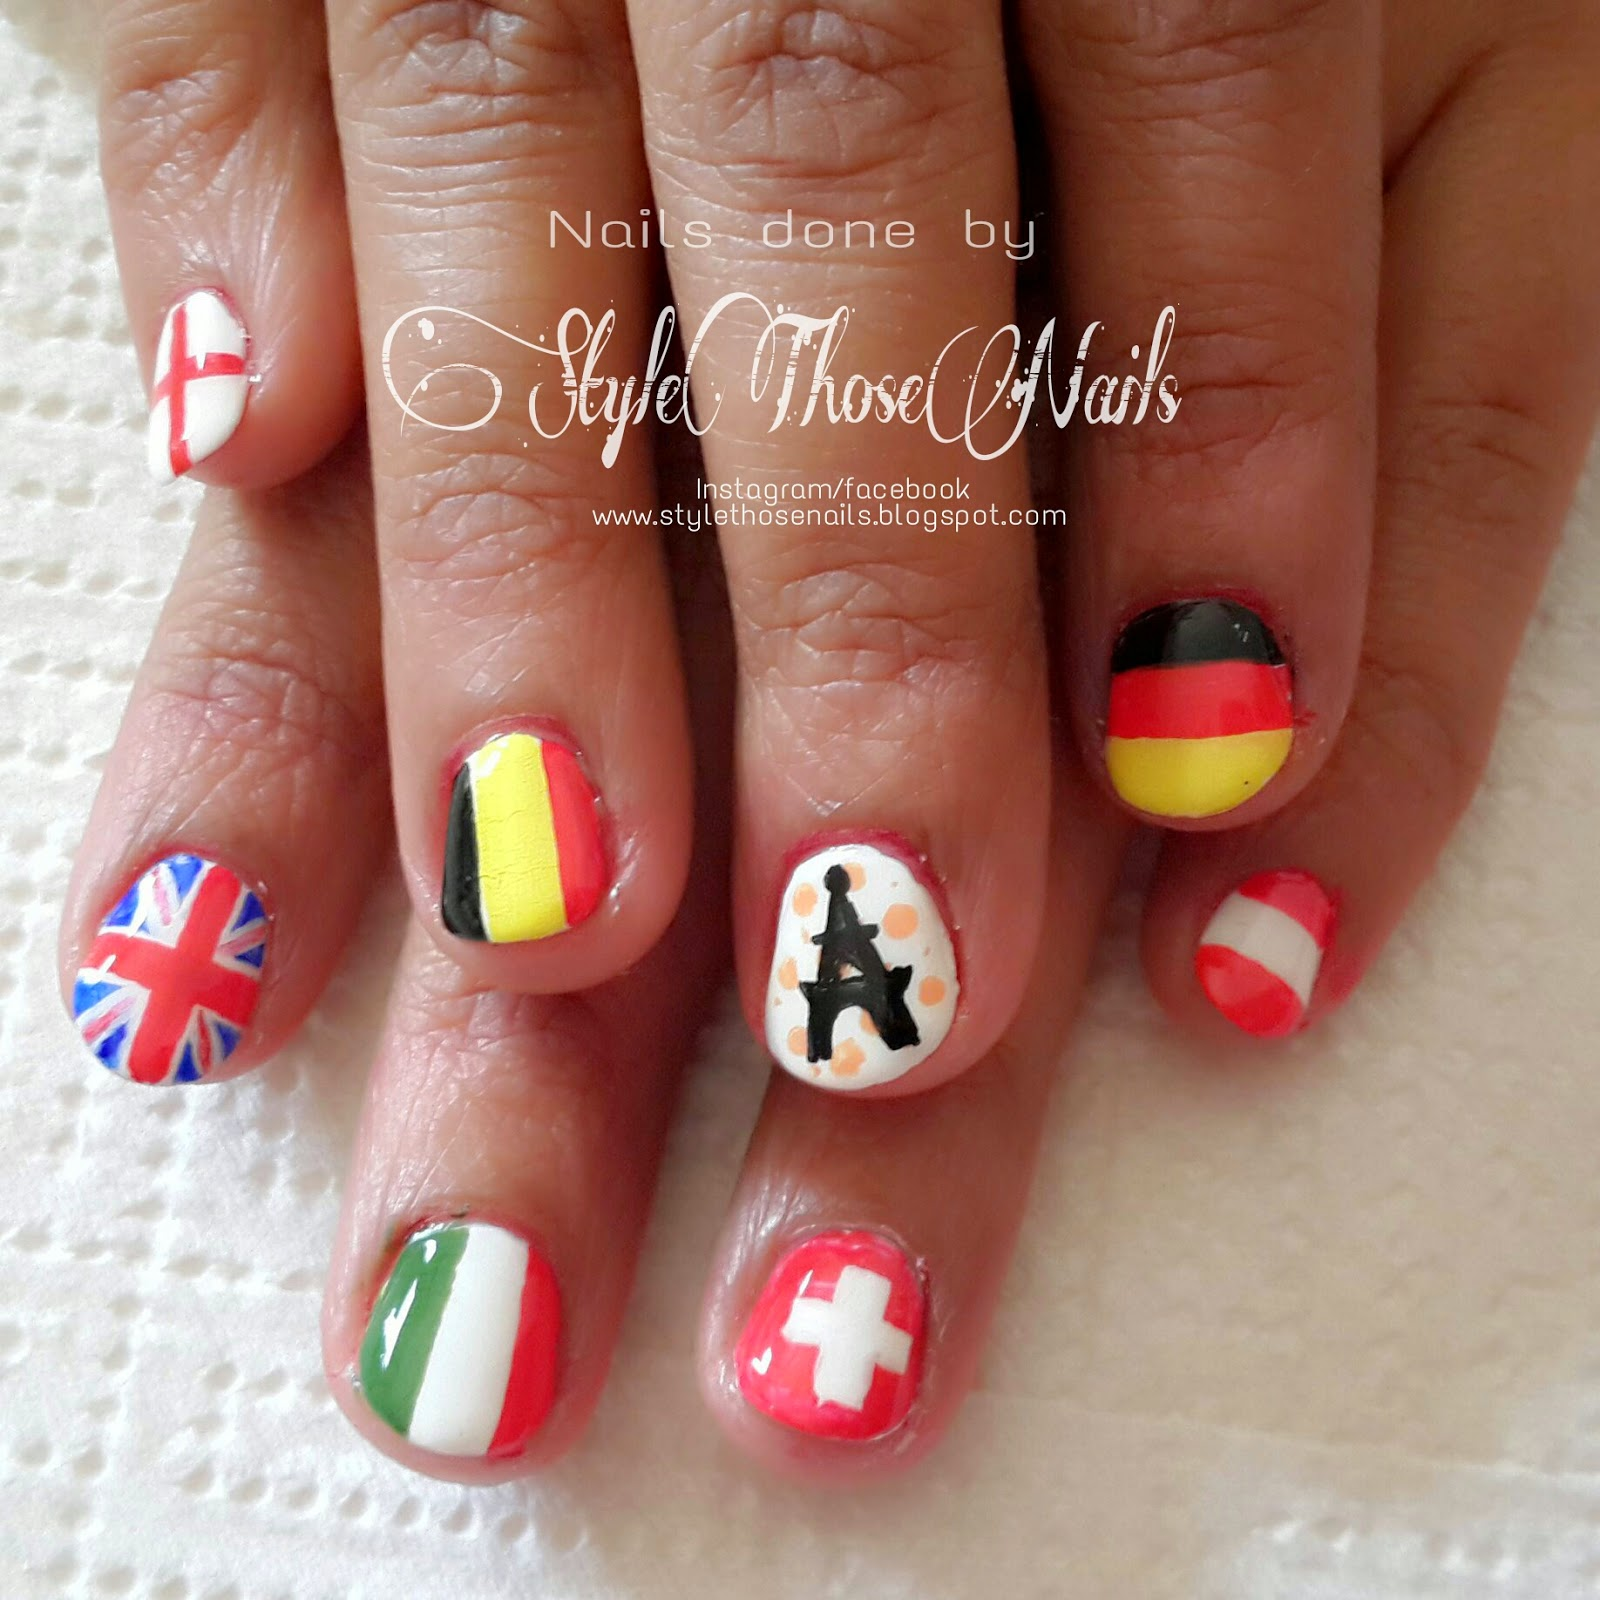 Cute Nail Designs For Vacation: Style those nails vacation six cute ...